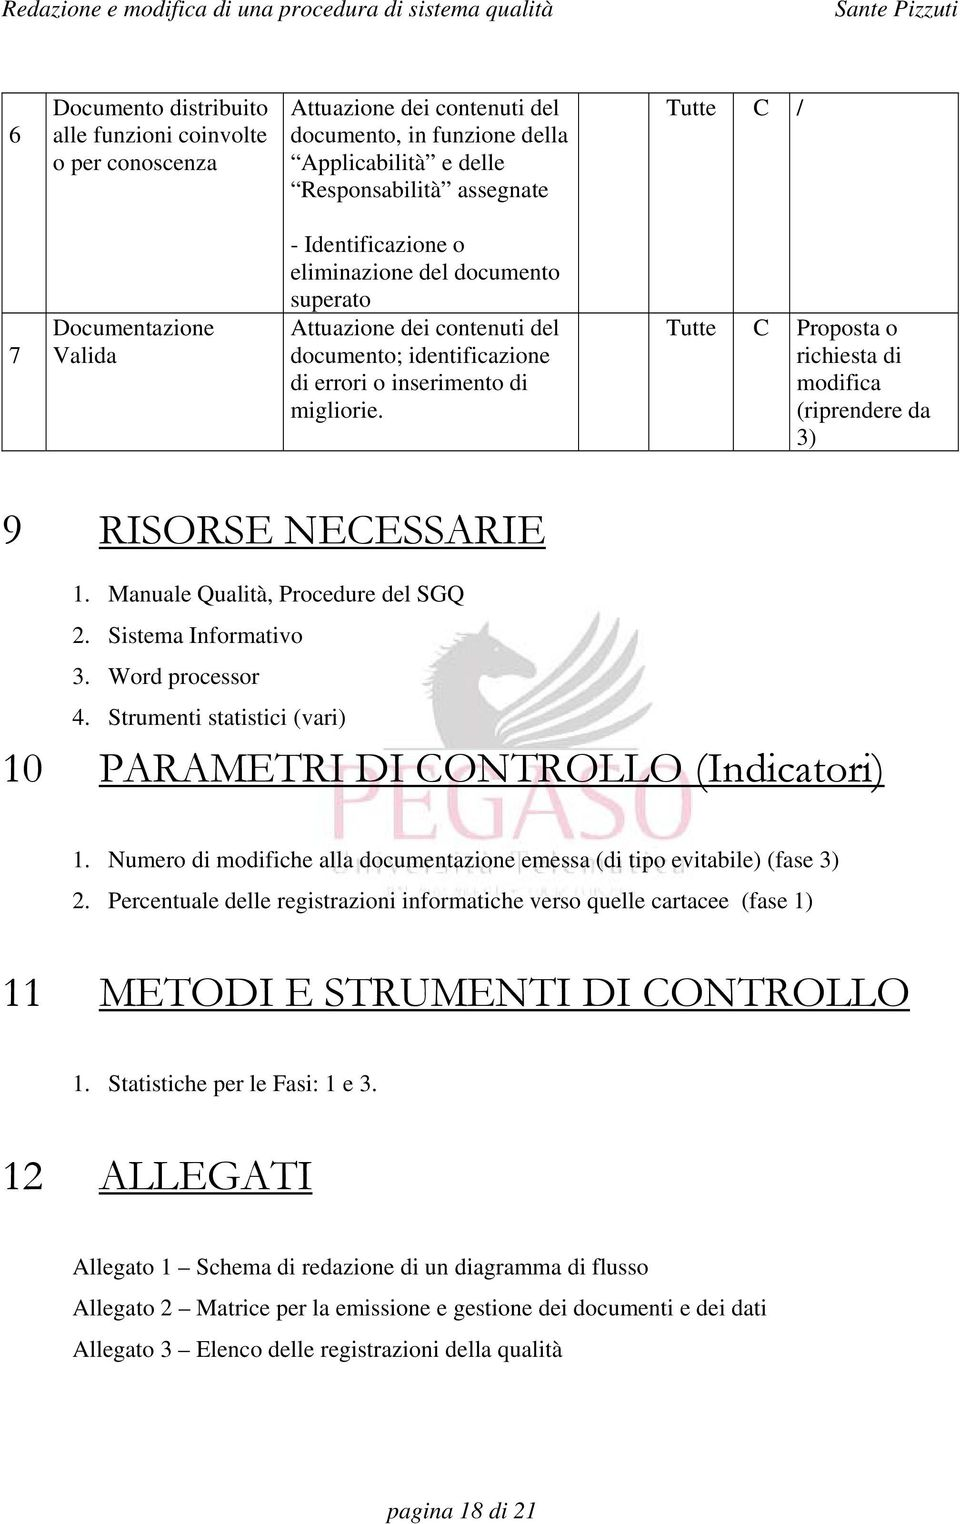 Tutte C Proposta o richiesta di modifica (riprendere da 3) 9 RISORSE NECESSARIE 1. Manuale Qualità, Procedure del SGQ 2. Sistema Informativo 3. Word processor 4.